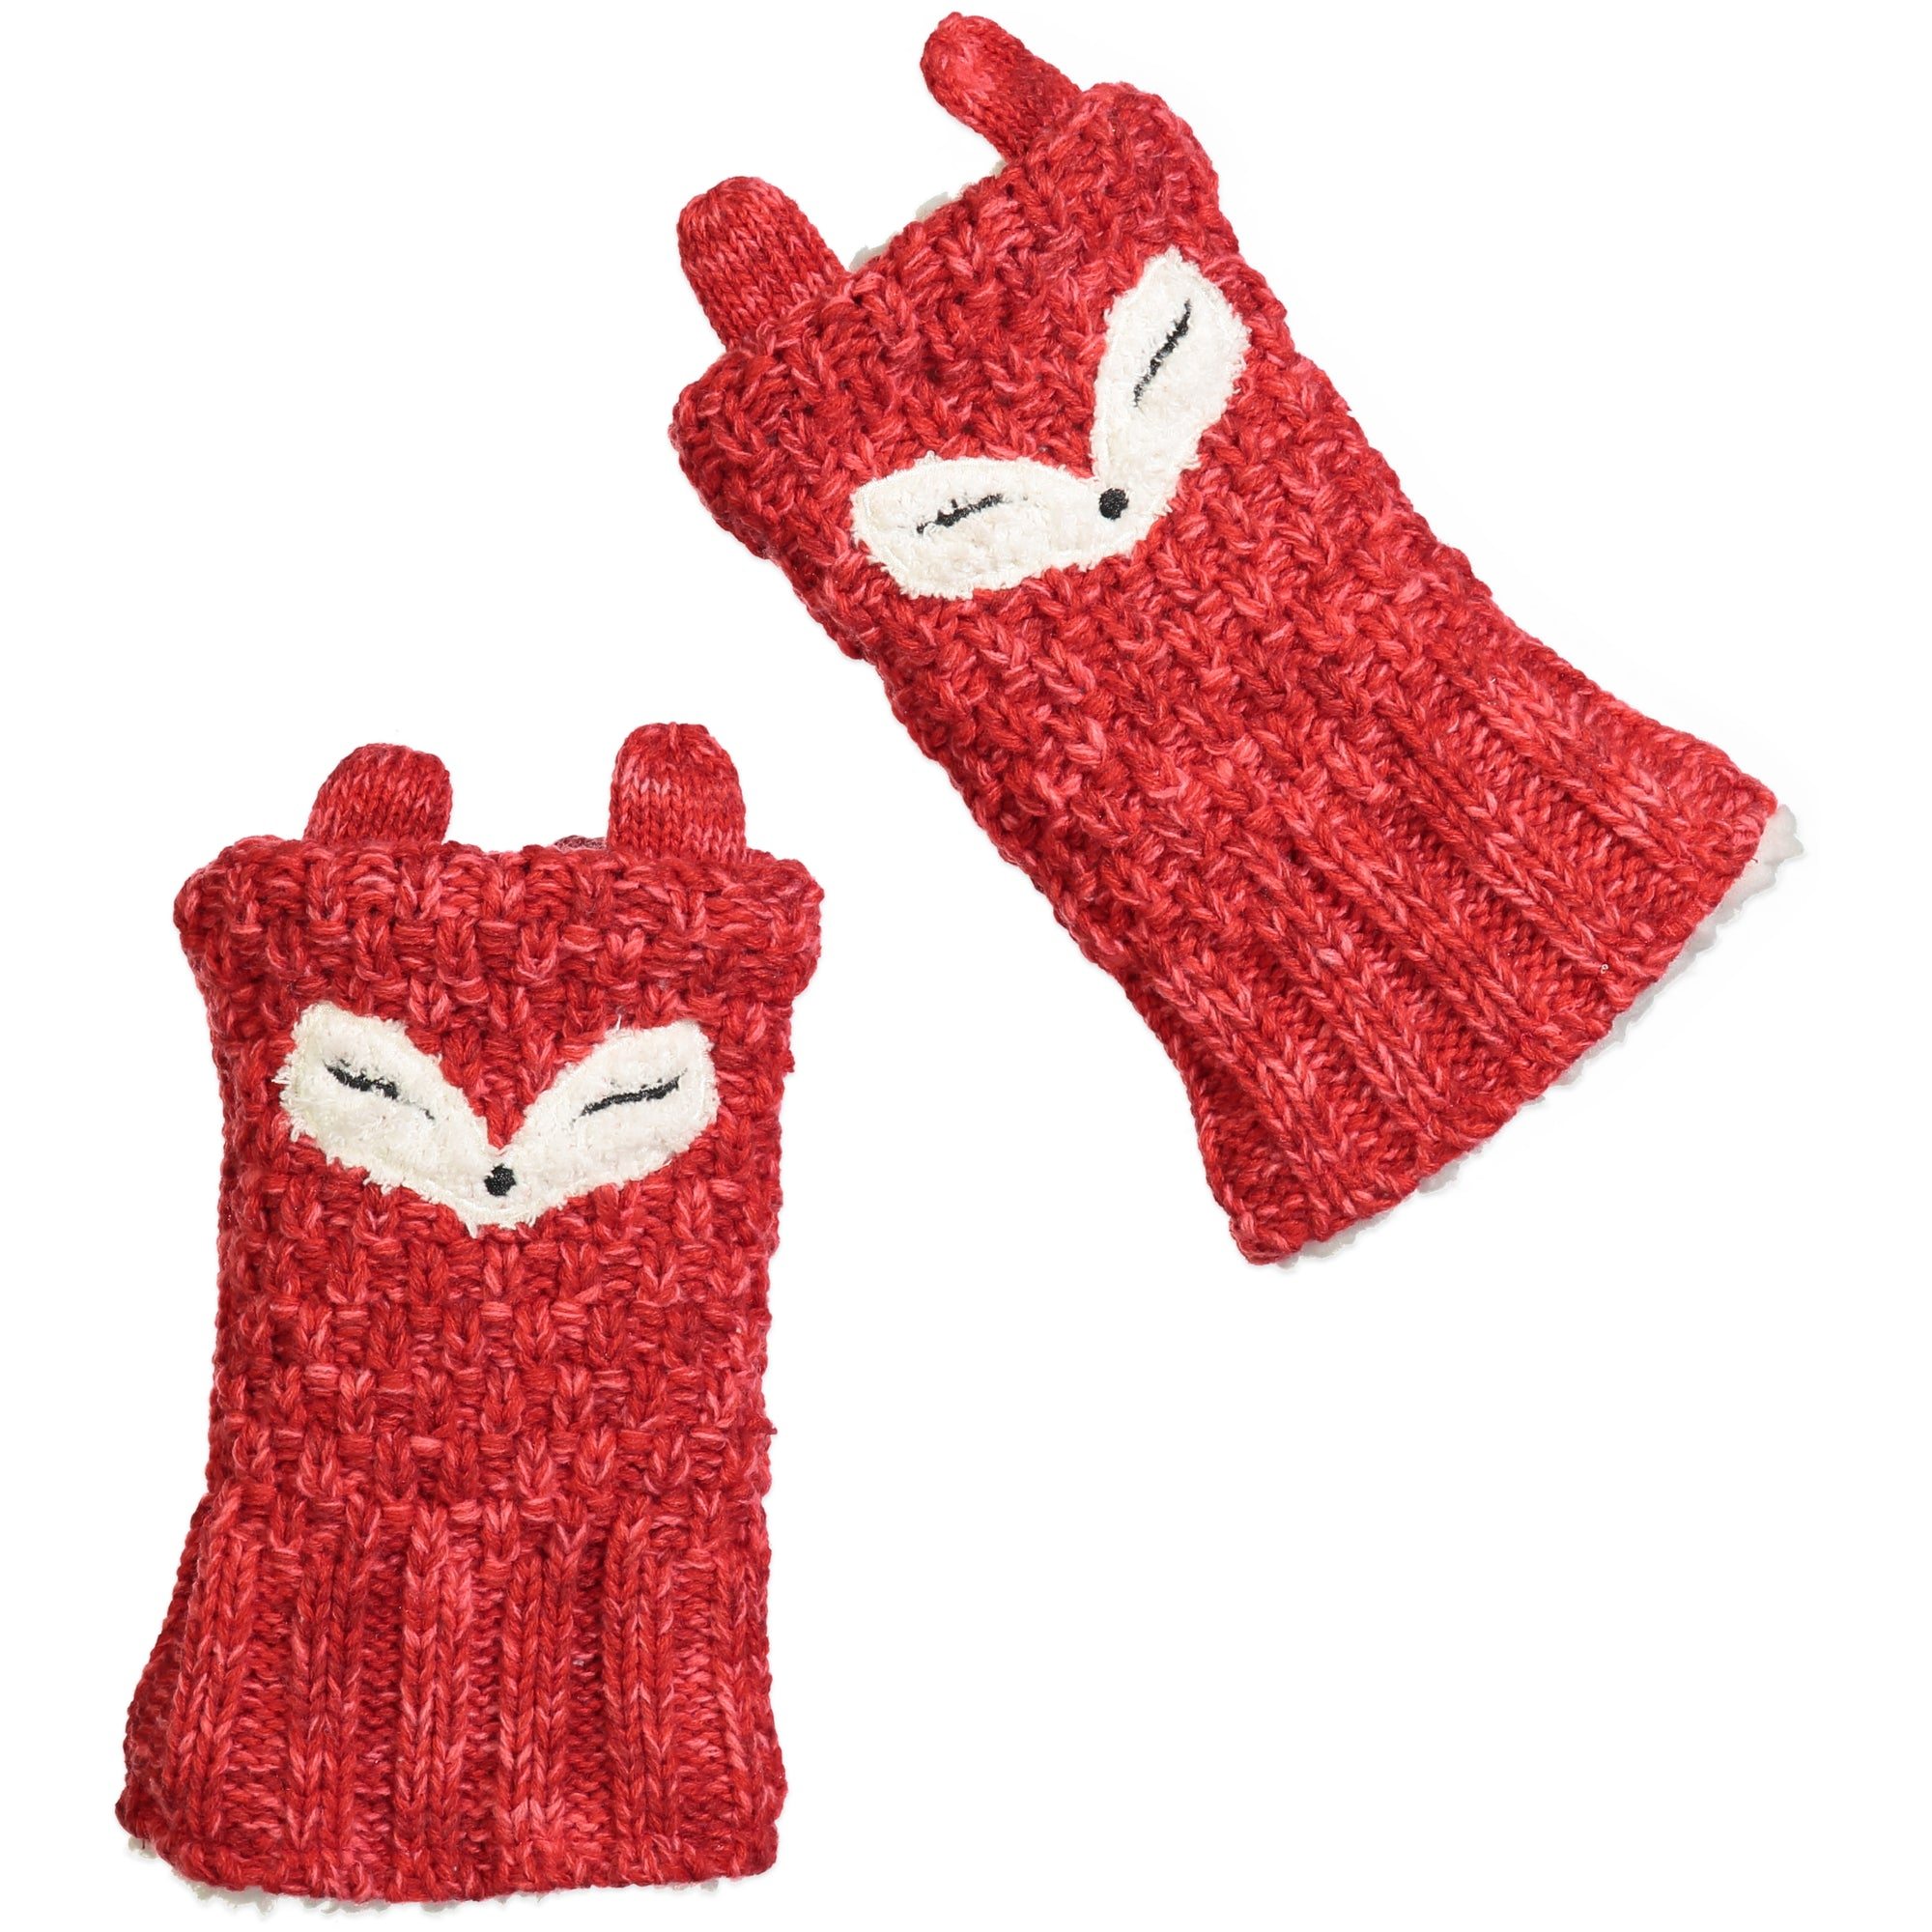 Women's Lil' Fox Knit Fingerless Gloves with Pom-Pom Ears